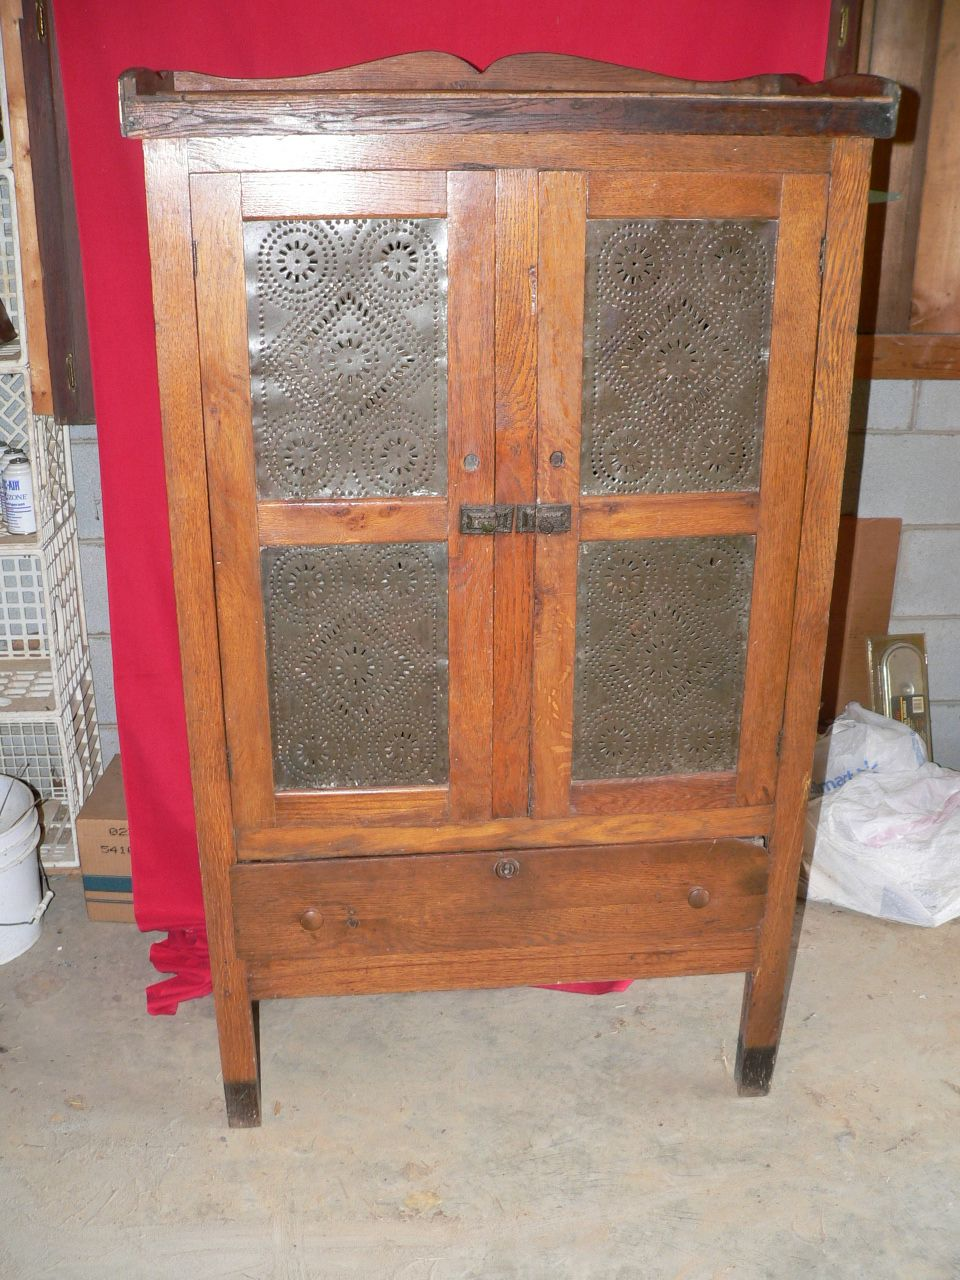 Antique Pie Safe Prices | Pie Safe - For Sale - Antique Pie Safe Prices Pie Safe - For Sale Vintage Kitchen